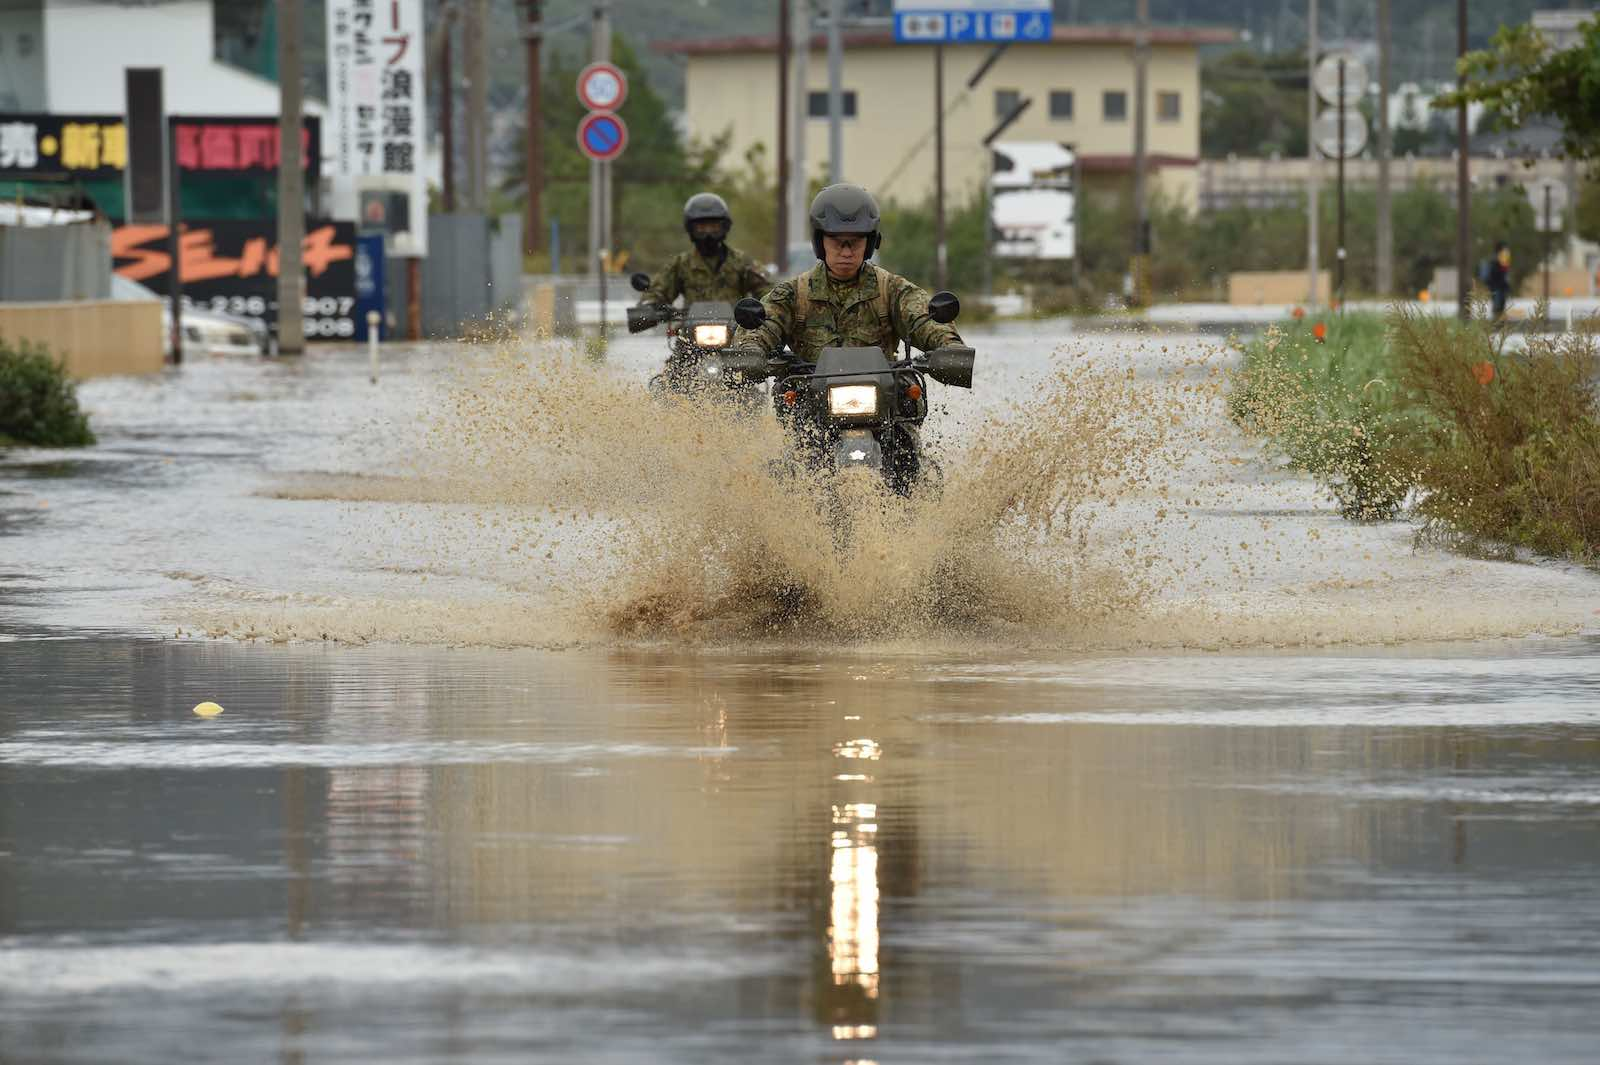 Military personnel drive their motorbikes down a flooded street in the aftermath of Typhoon Hagibis in Nagano on 14 October (Photo: Kazuhiro Nogi/AFP/Getty Images)